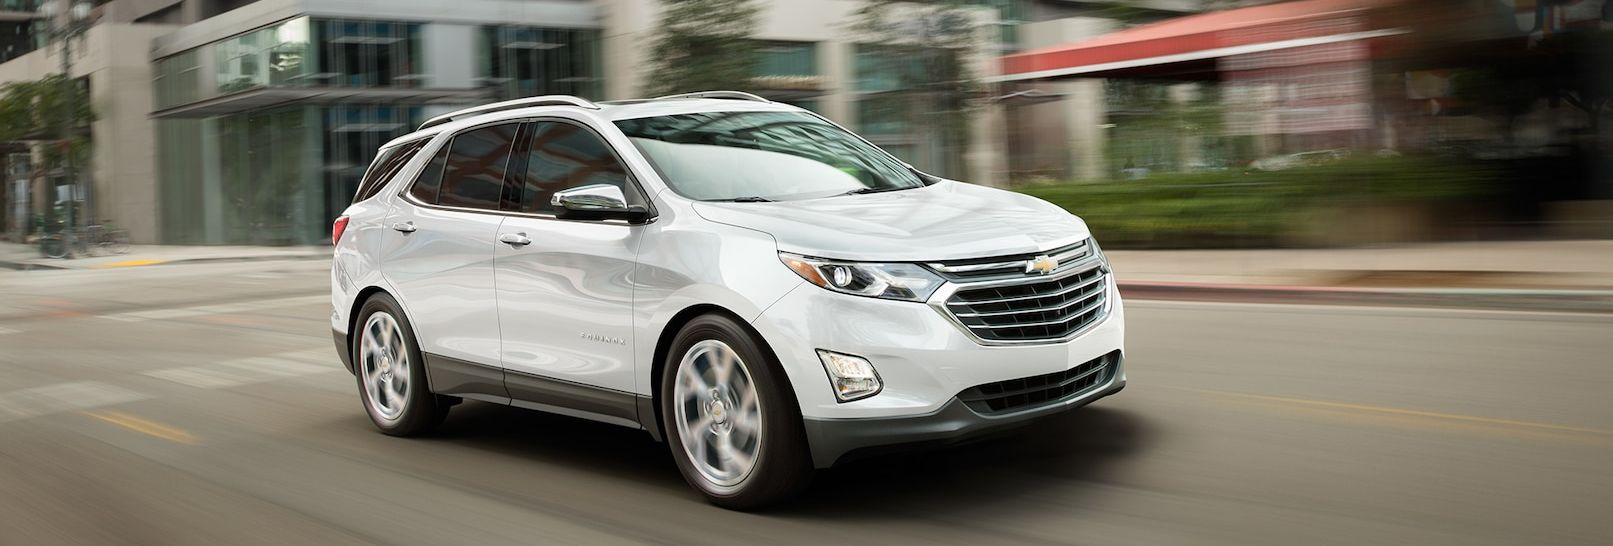 2019 Chevrolet Equinox Leasing near Fairfax, VA